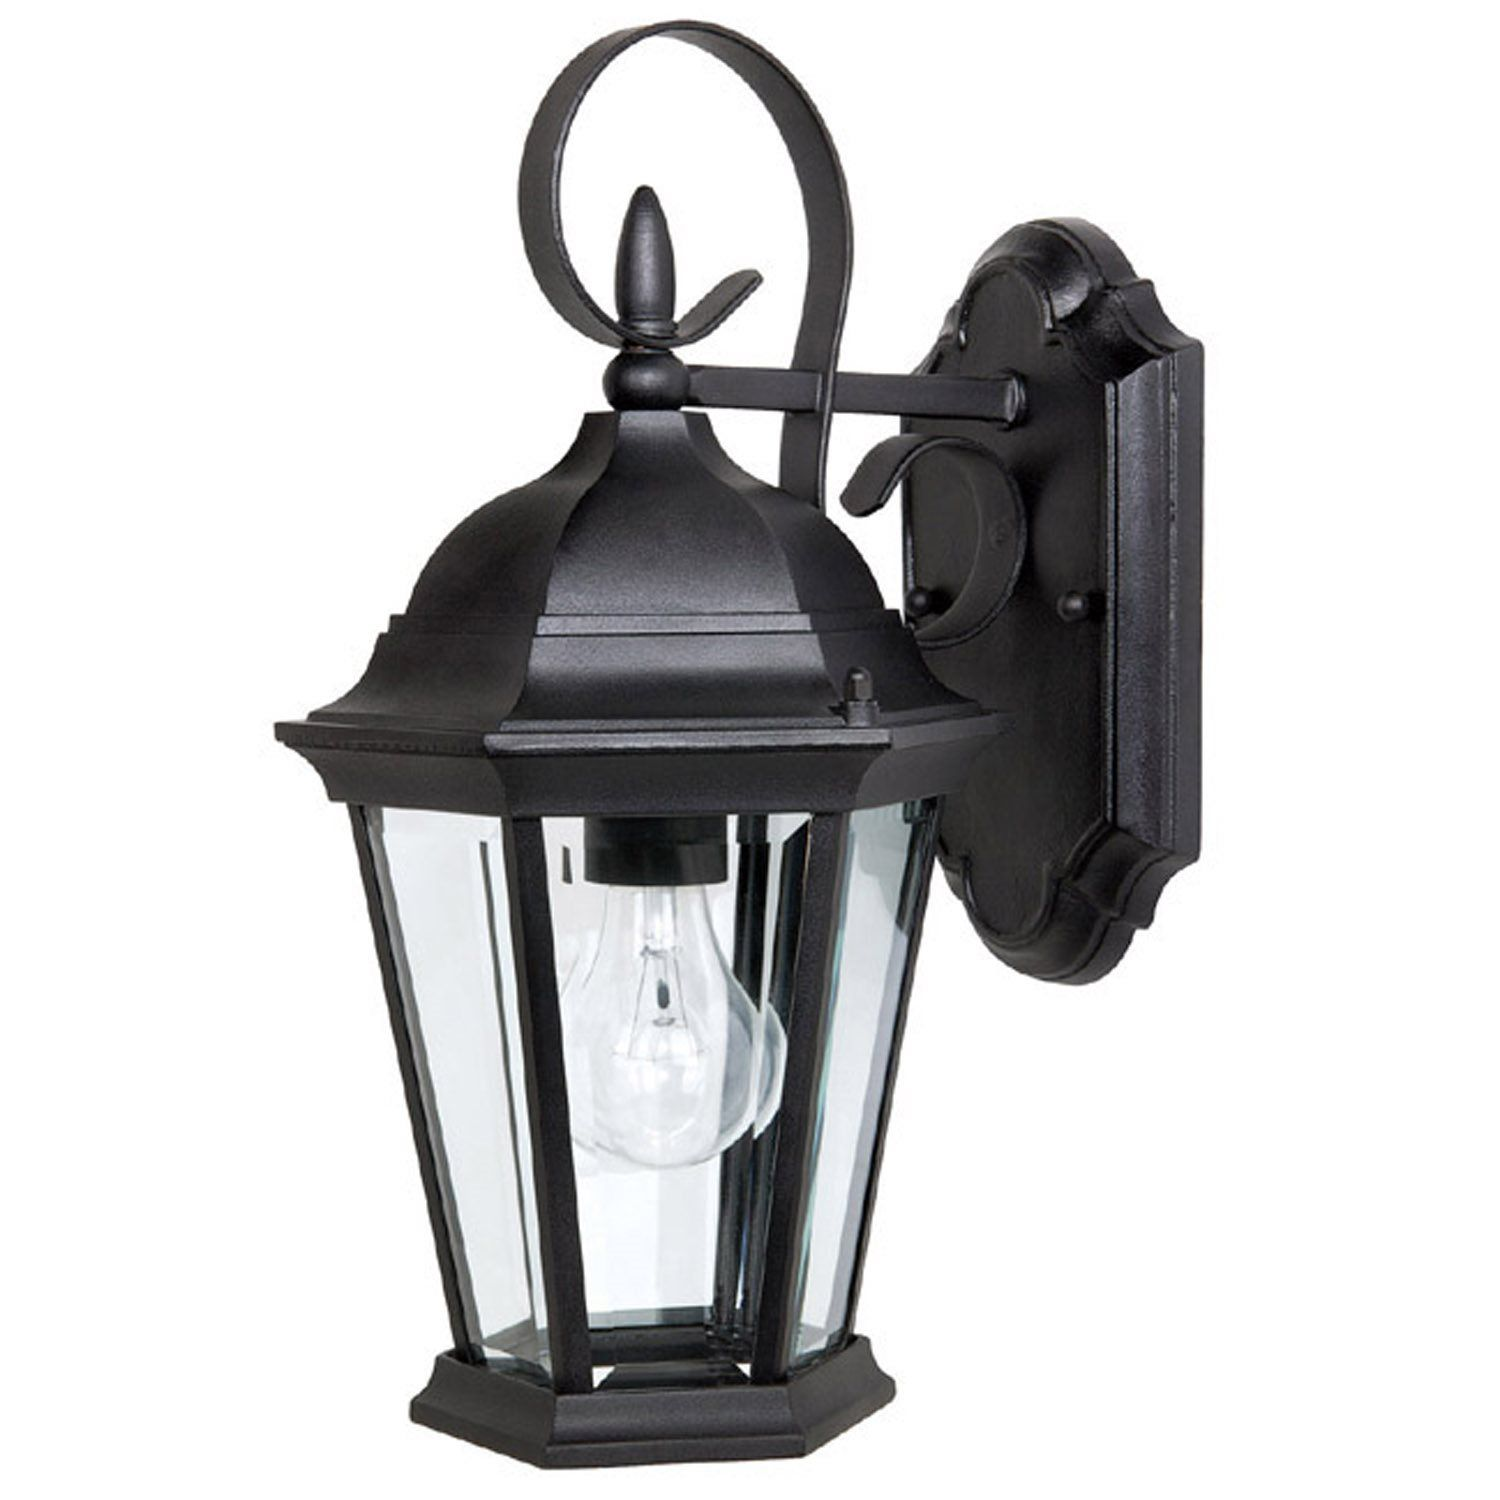 South Shore Decorating Capital Lighting 9726bk Carriage House Traditional Outdoor Wall Black Outdoor Wall Lights Outdoor Wall Lantern Outdoor Walls